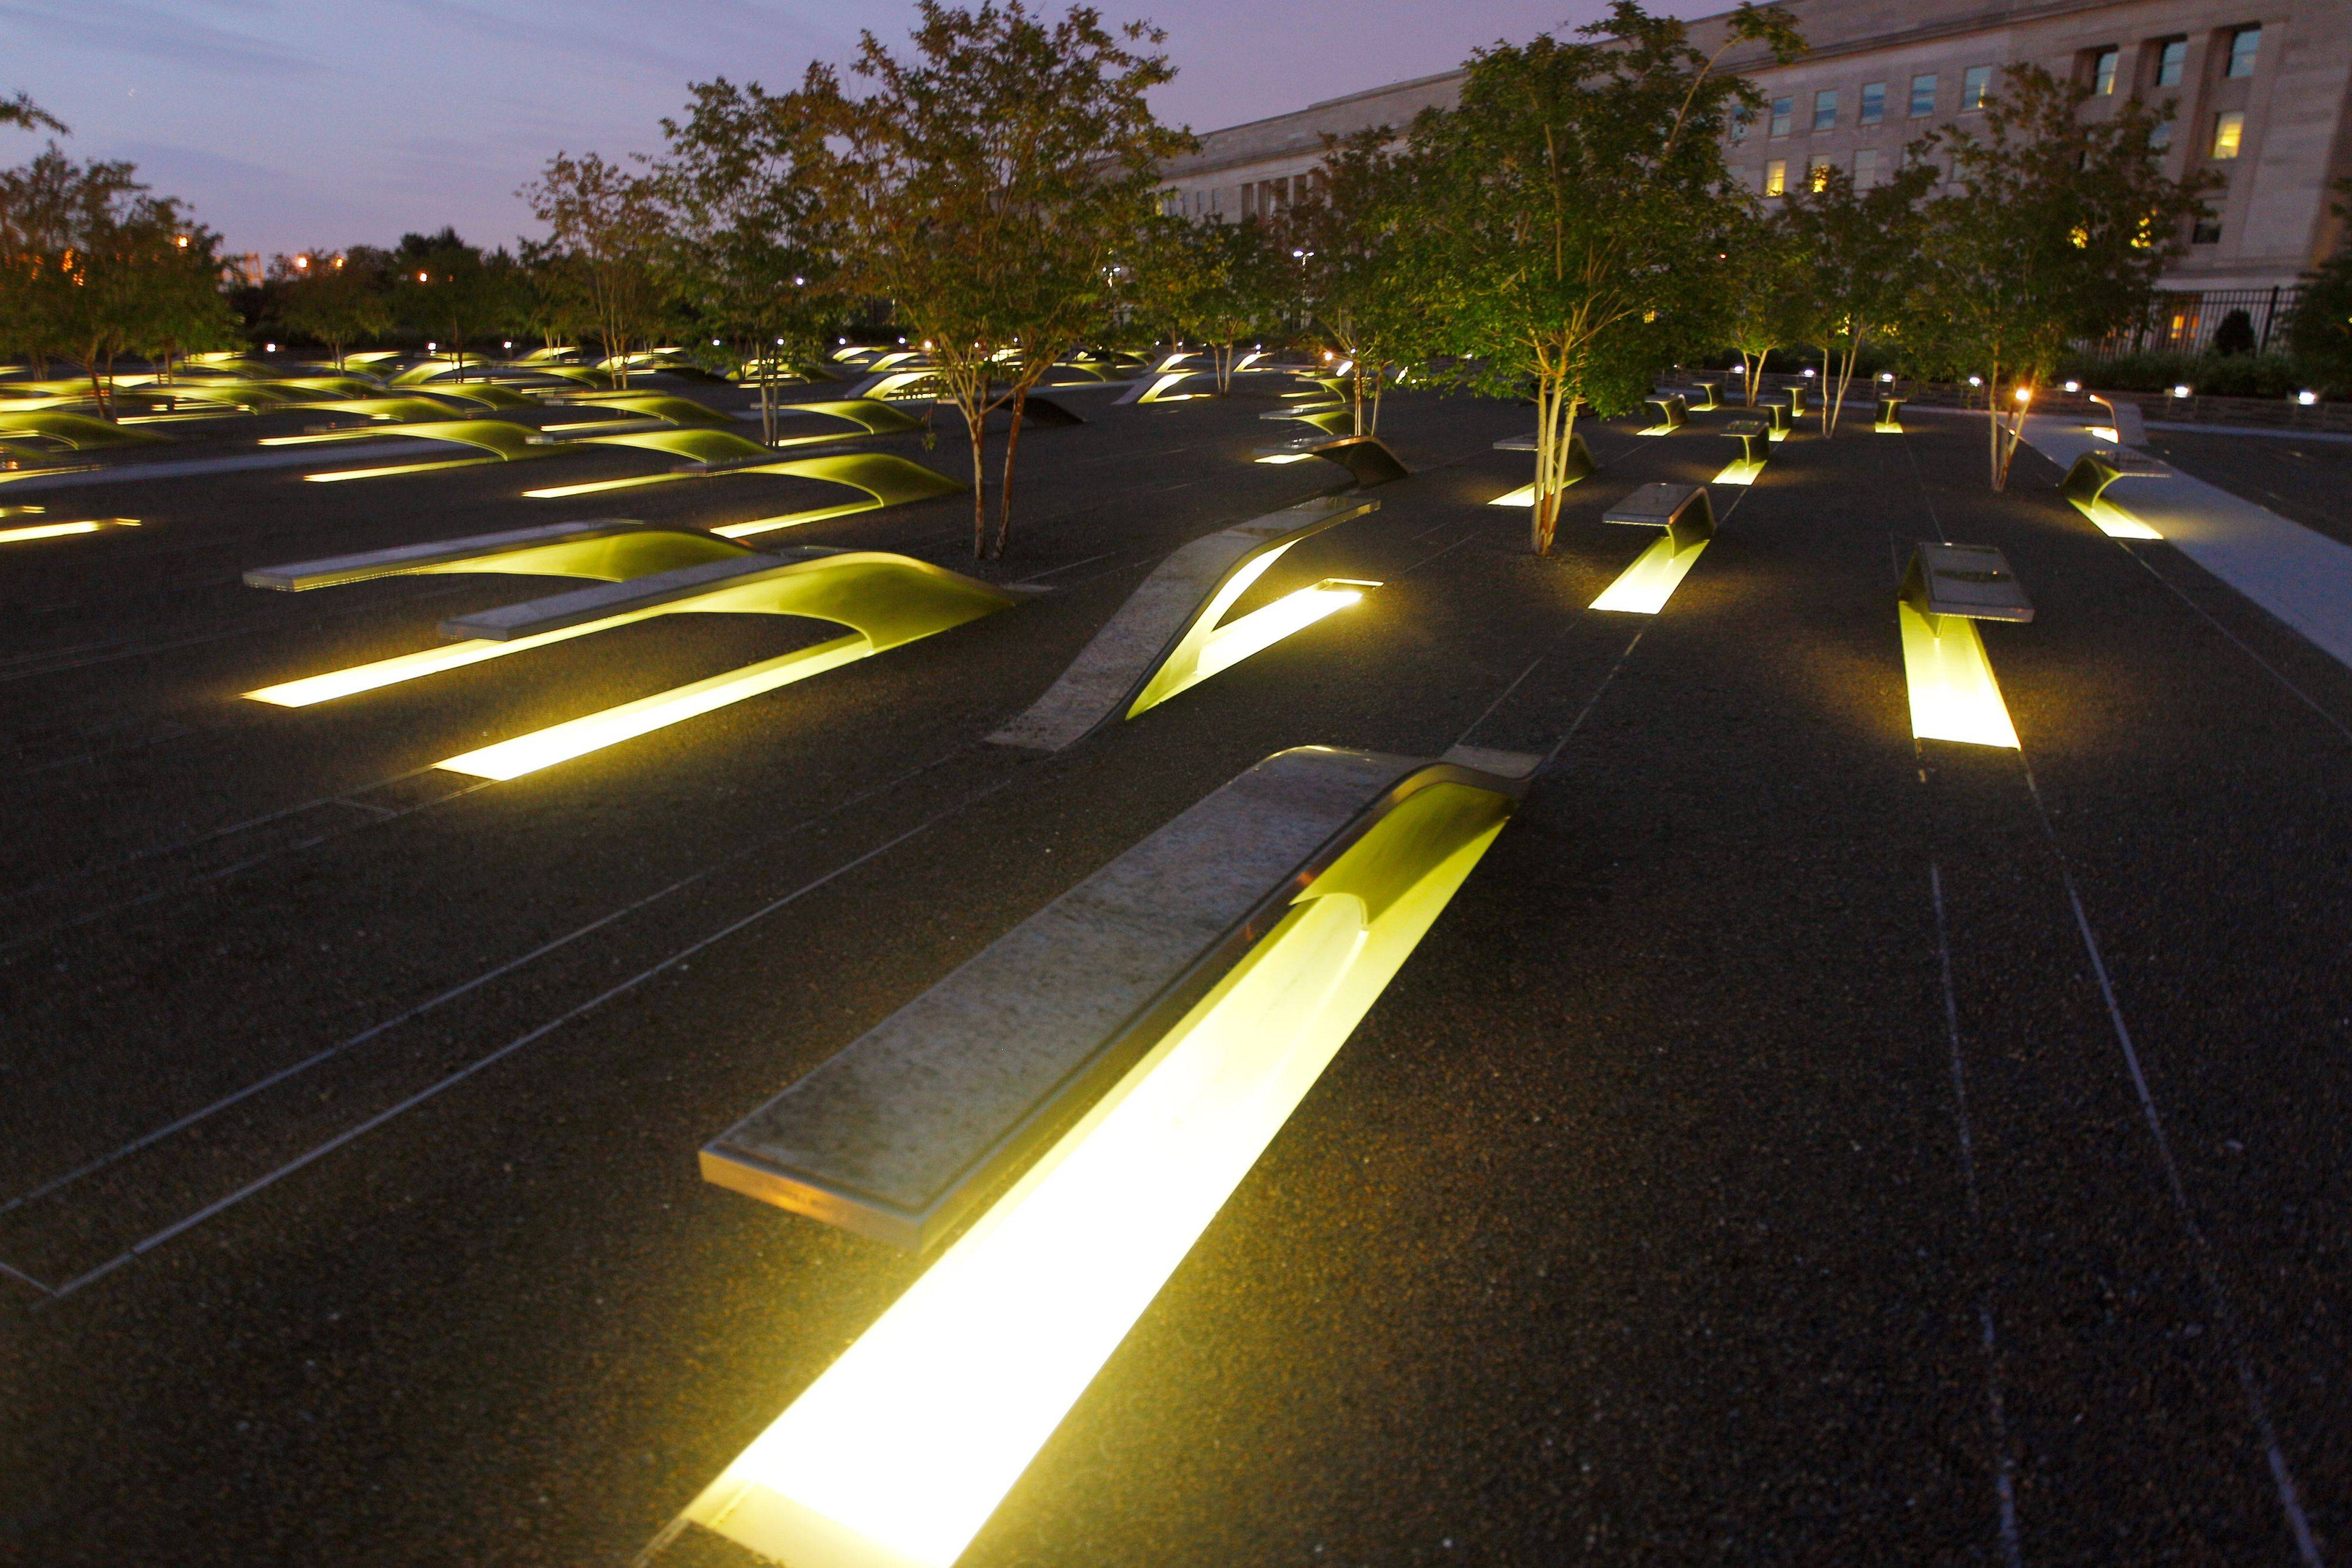 Lights illuminate the 184 stone benches outside the Pentagon in Arlington, Va. The permanent outdoor Pentagon Memorial was created to honor the family members and friends killed both in the building and on American Airlines Flight 77.